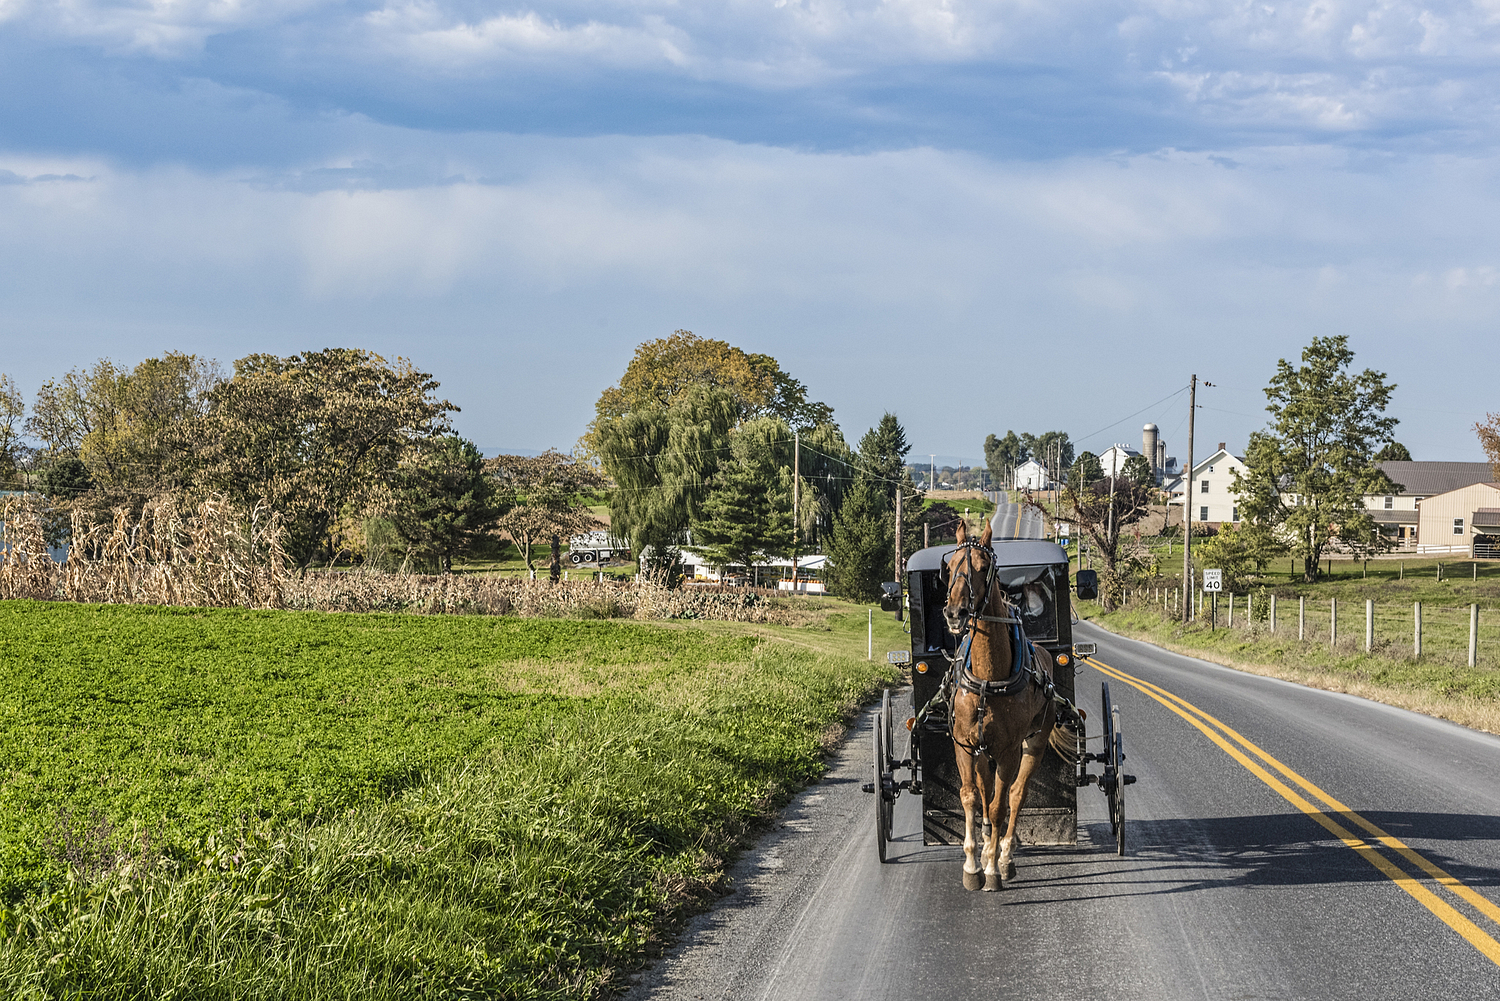 Horse with buggy, Amish country, Virginia, USA